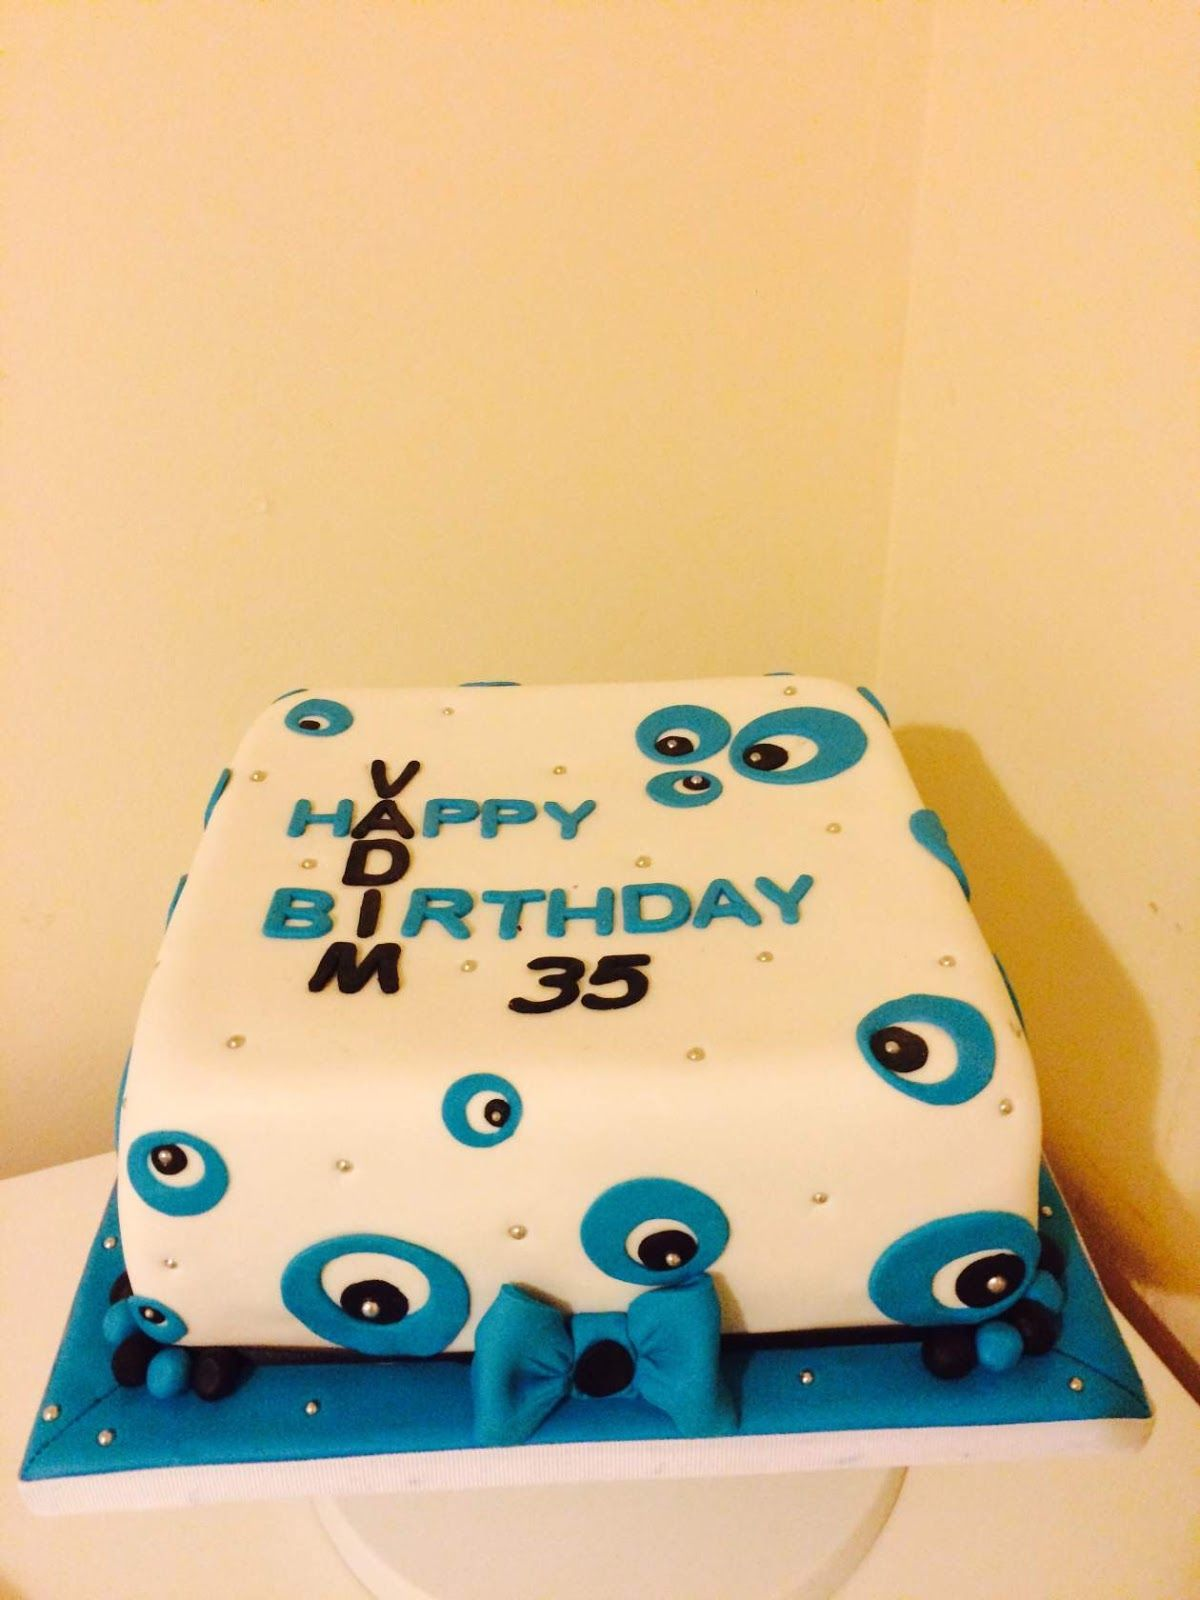 Tis Is A Beautyfull Birthday Cake For 35 Years Old Vadim Made By